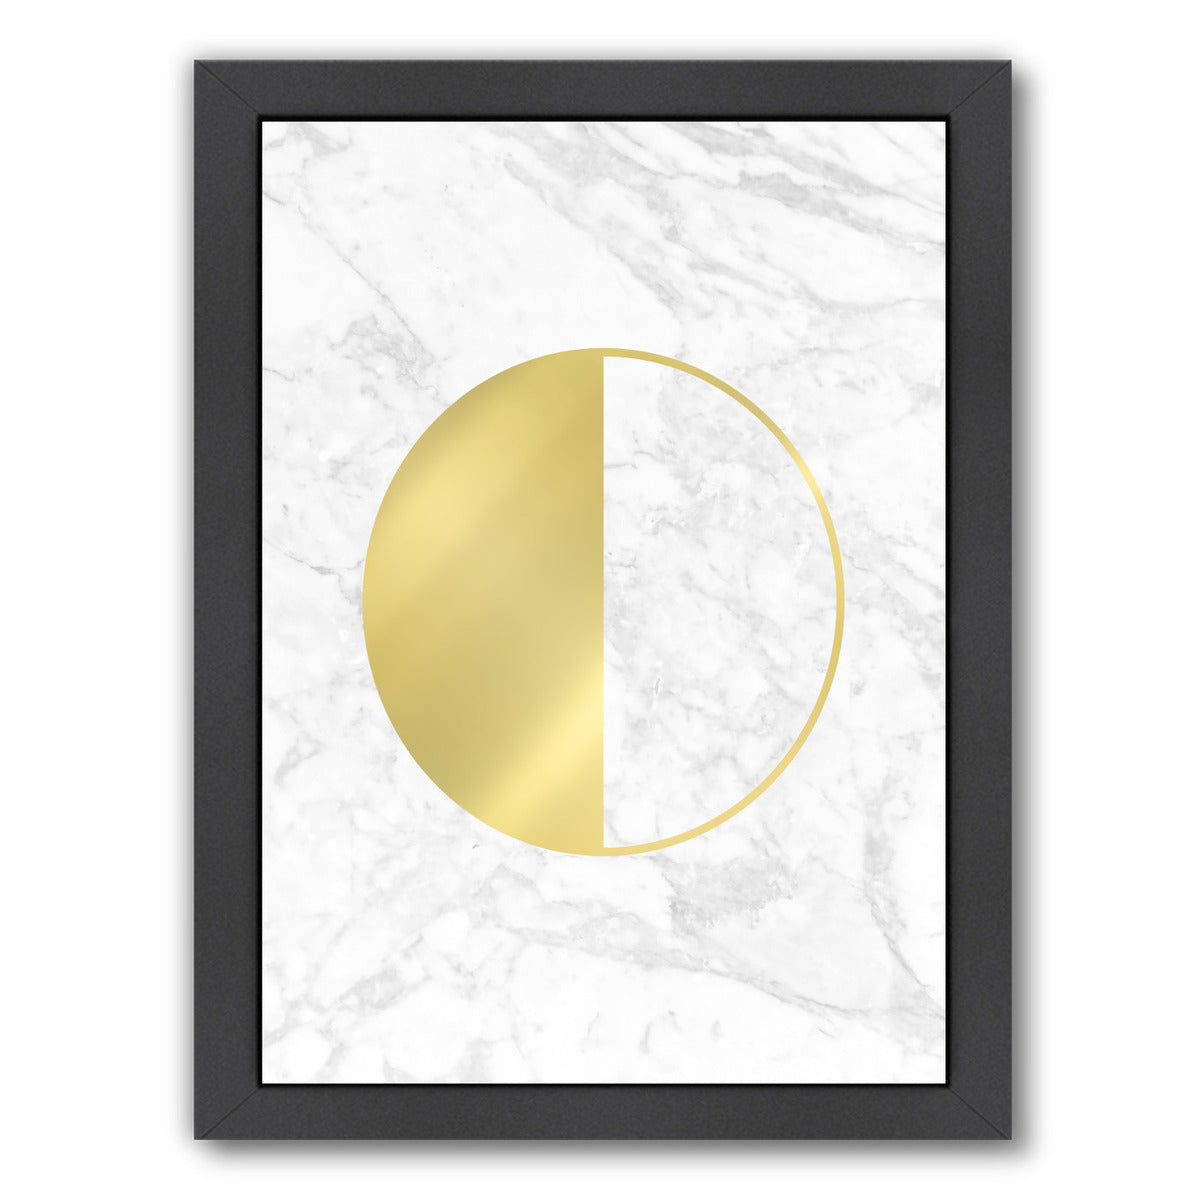 Gold Circle By Nuada - Black Framed Print - Wall Art - Americanflat